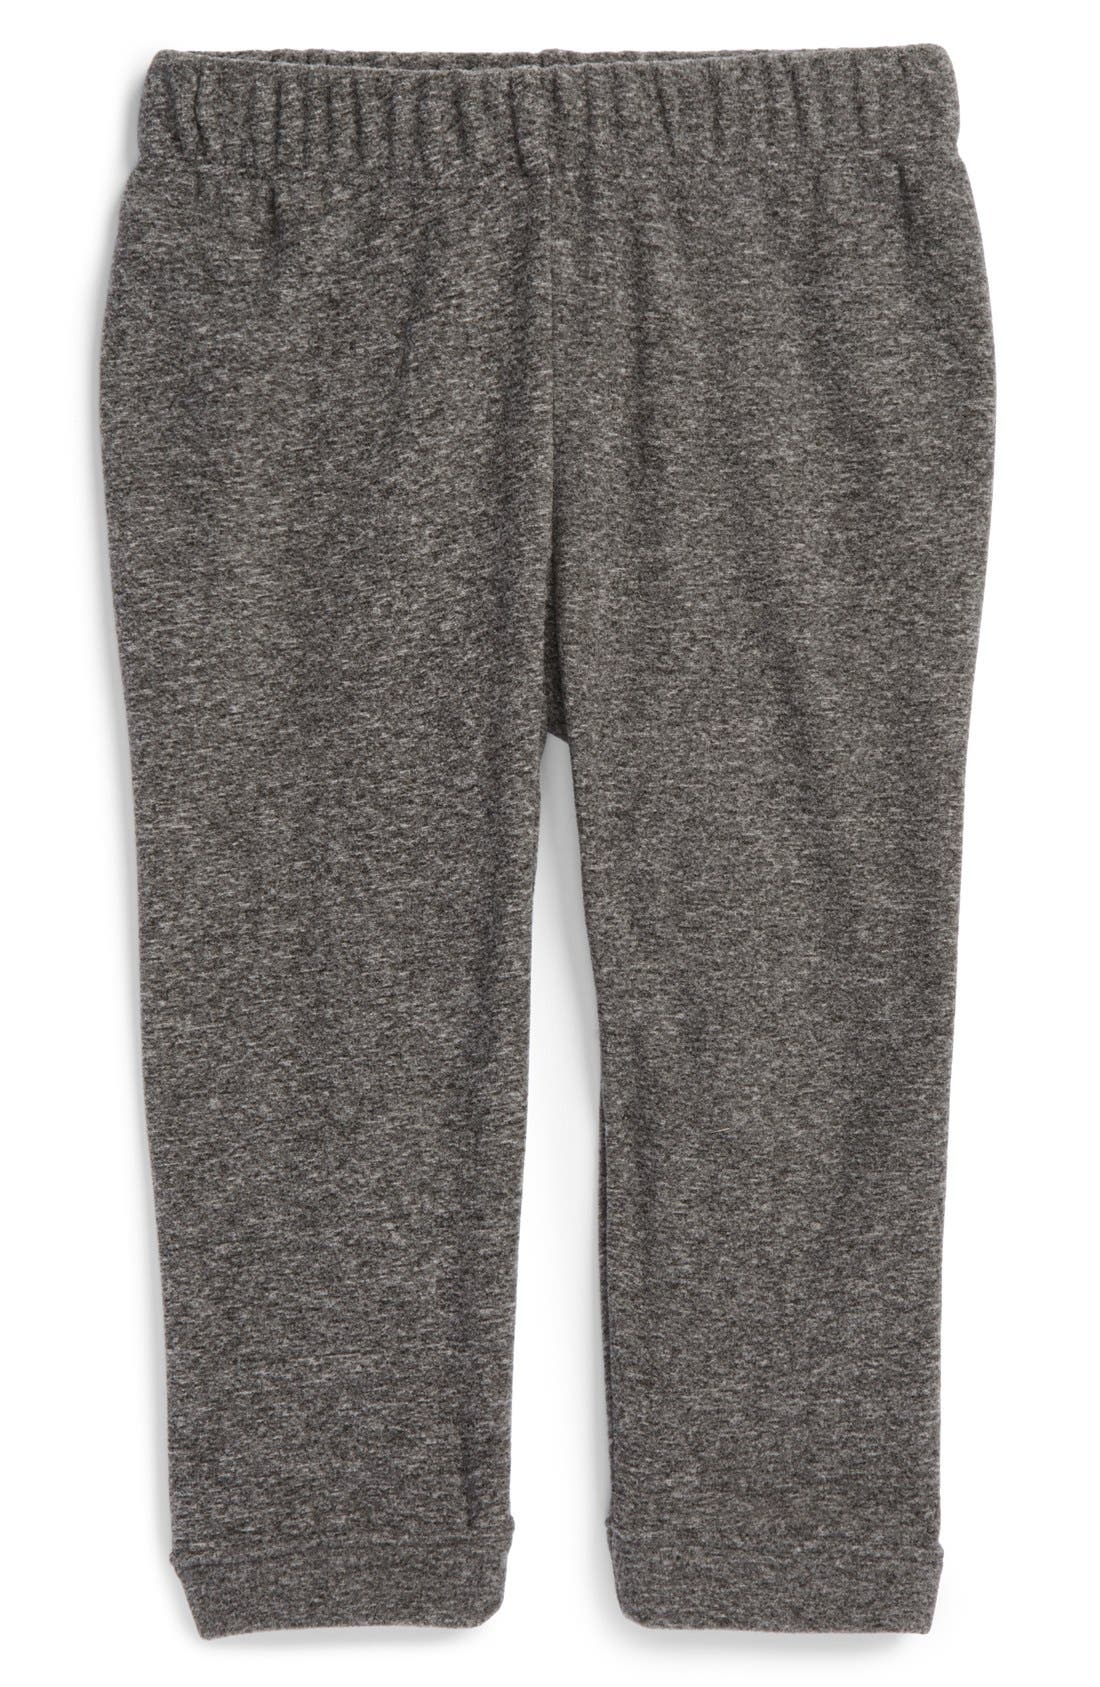 Alternate Image 1 Selected - The North Face 'Glacier' Fleece Pants (Baby Boys)